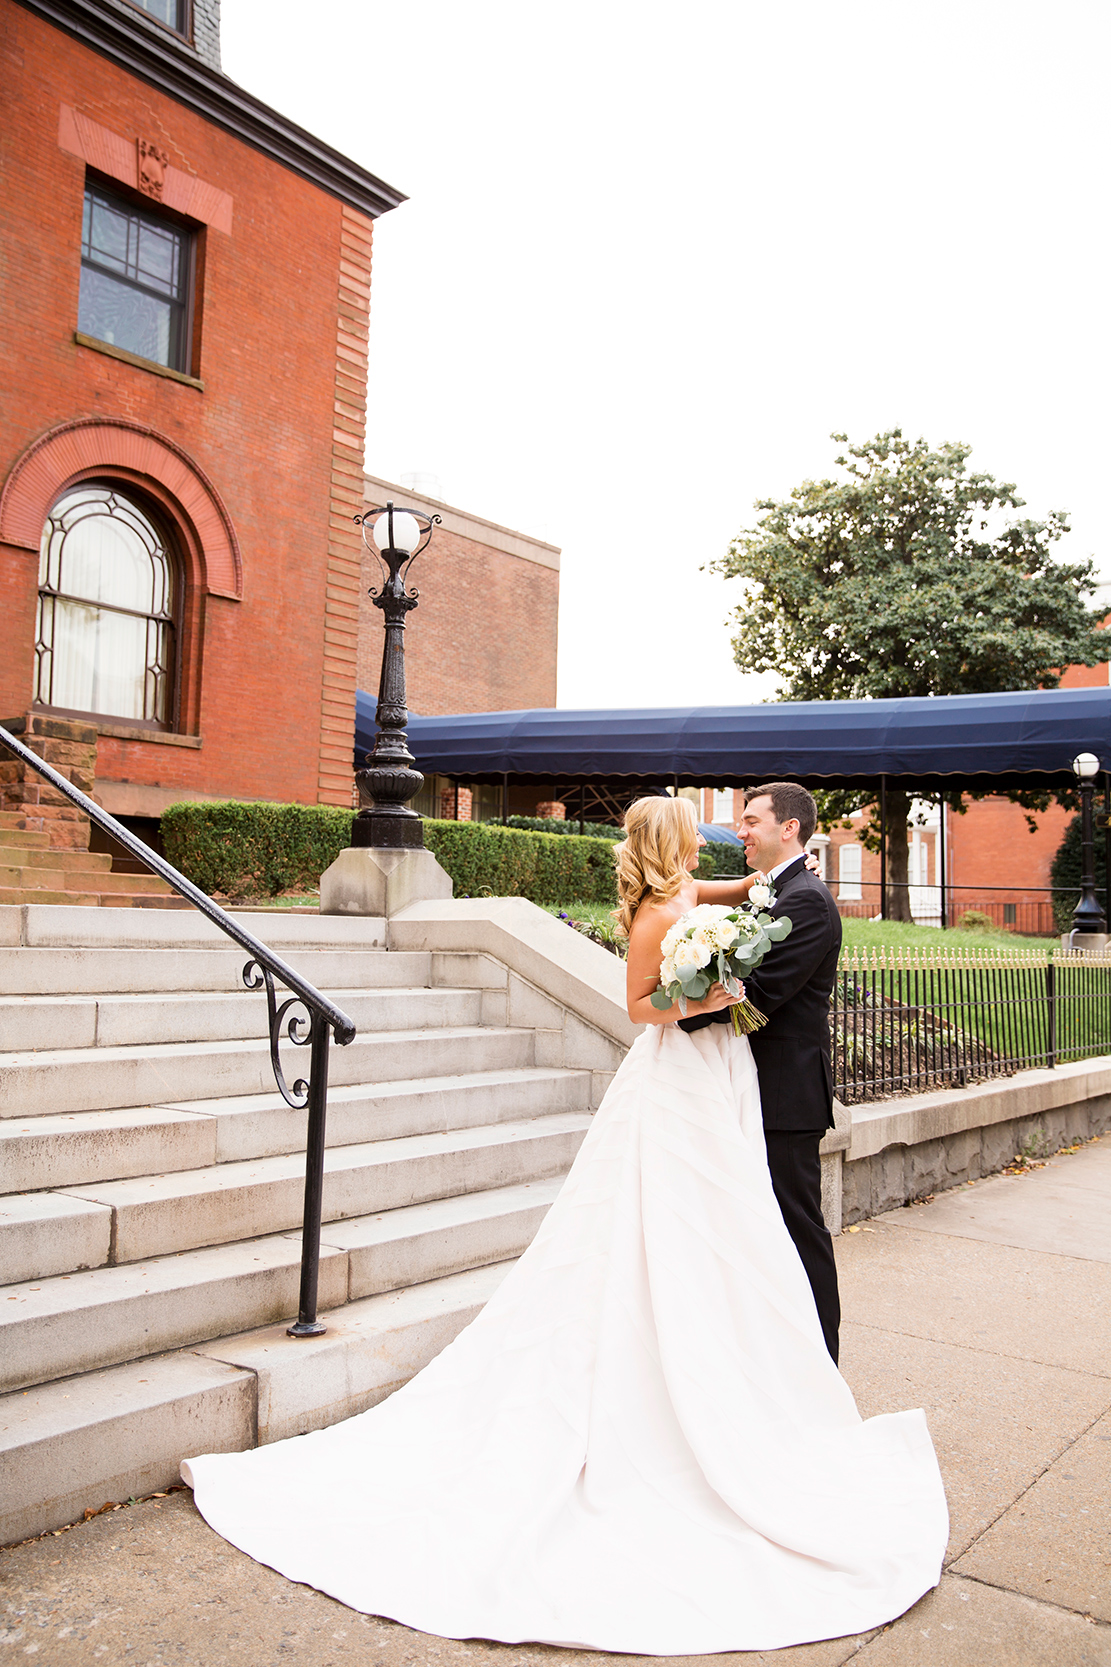 Wedding Preview  Ryan  Dave - Image Property of www.j-dphoto.com